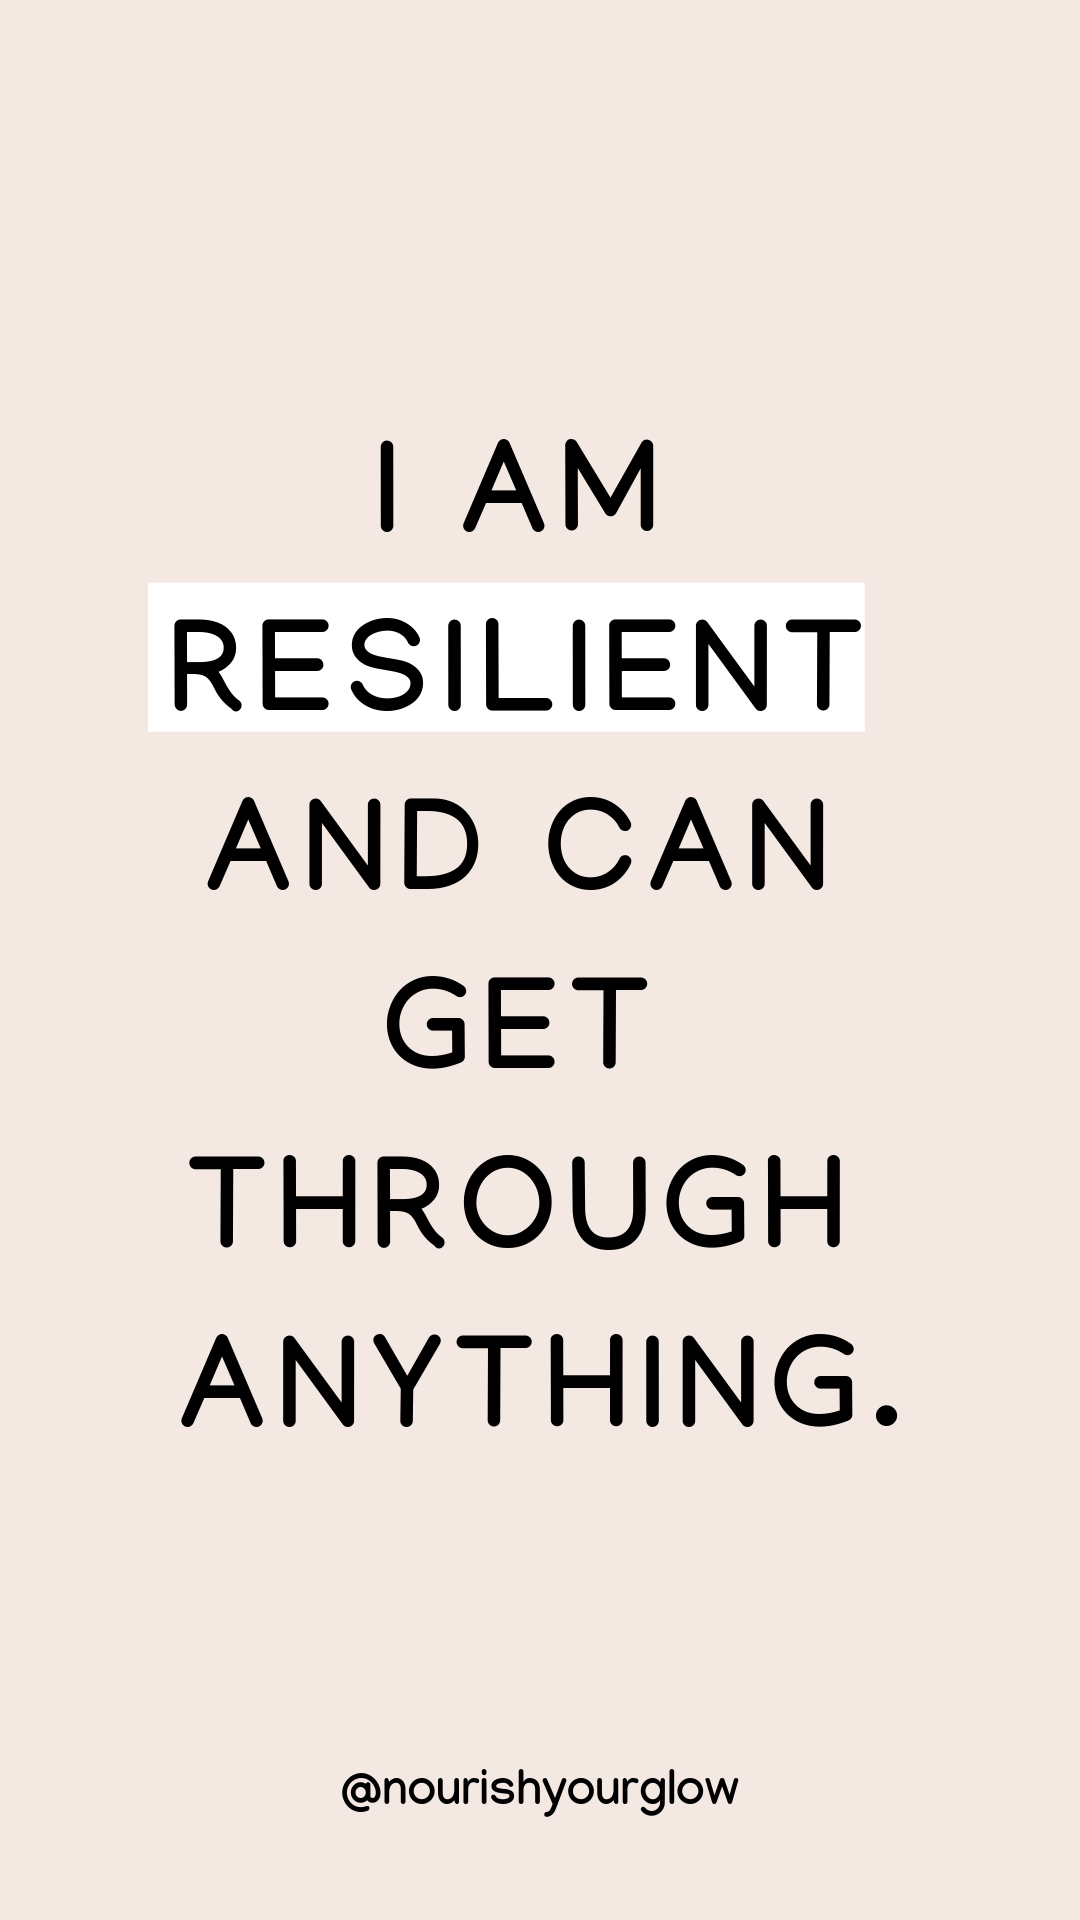 Favourite Daily Affirmations for a more Positive Mindset - Nourish Your Glow